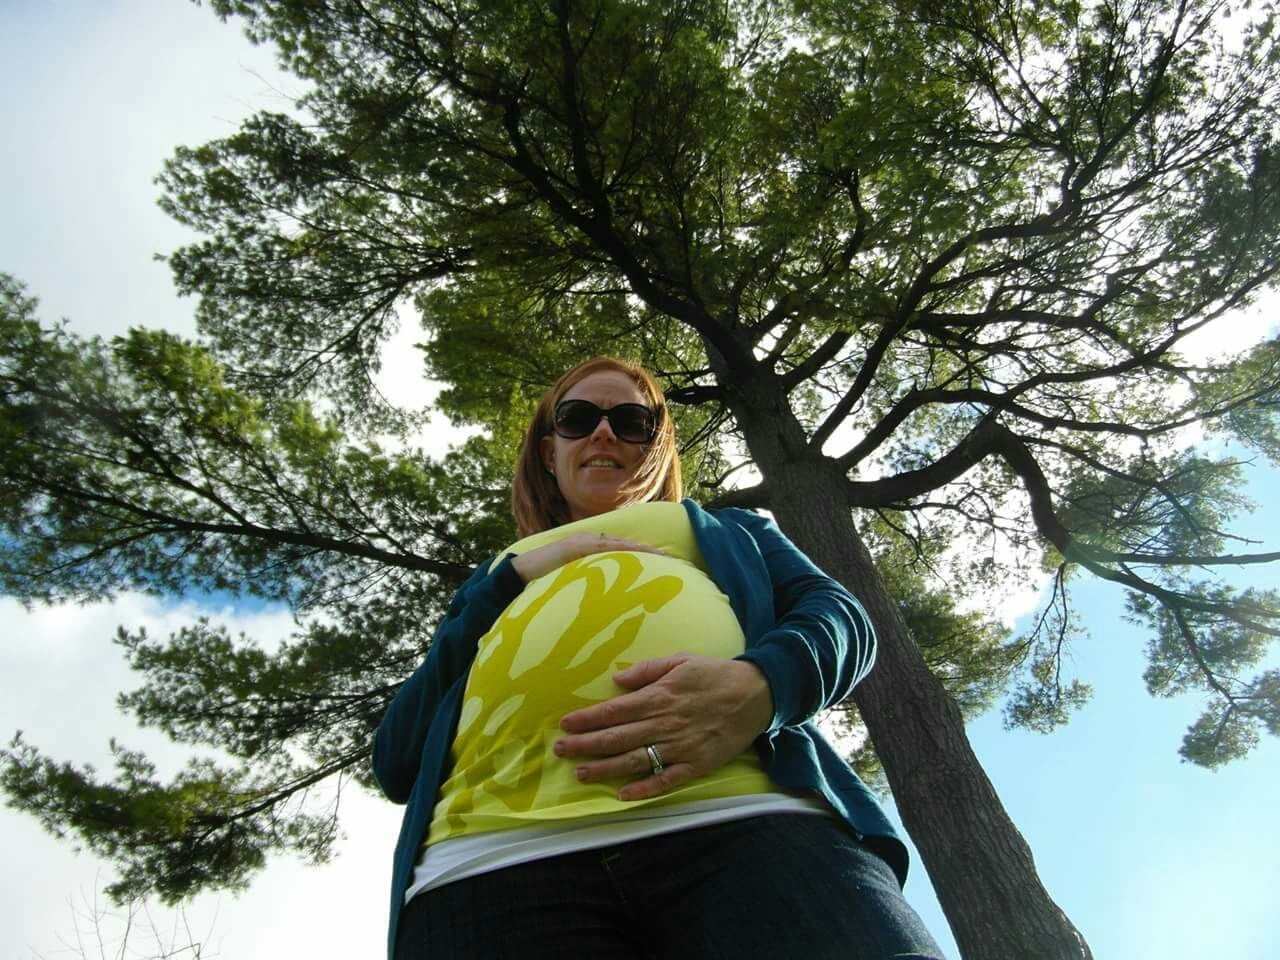 tree, low angle view, sunglasses, looking at camera, one person, standing, three quarter length, casual clothing, day, outdoors, smiling, real people, front view, portrait, leisure activity, sky, happiness, lifestyles, young adult, nature, people